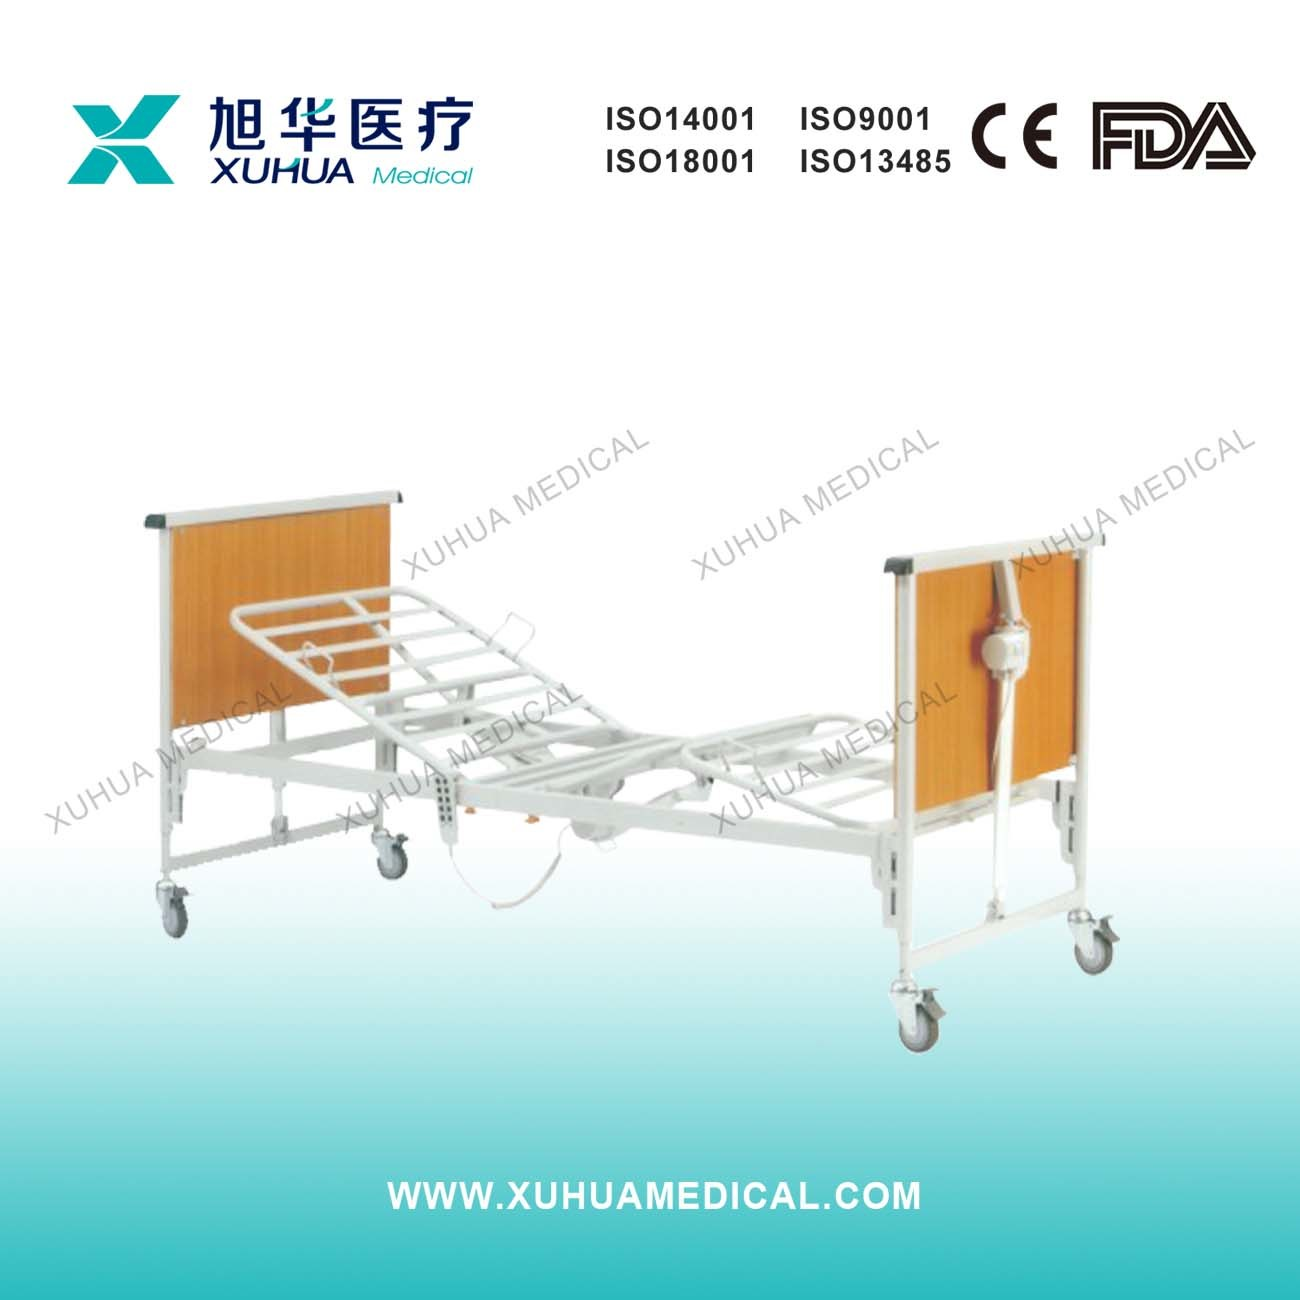 Type-C Electric Wooden Five Functions Medical Bed (Foldable Type)